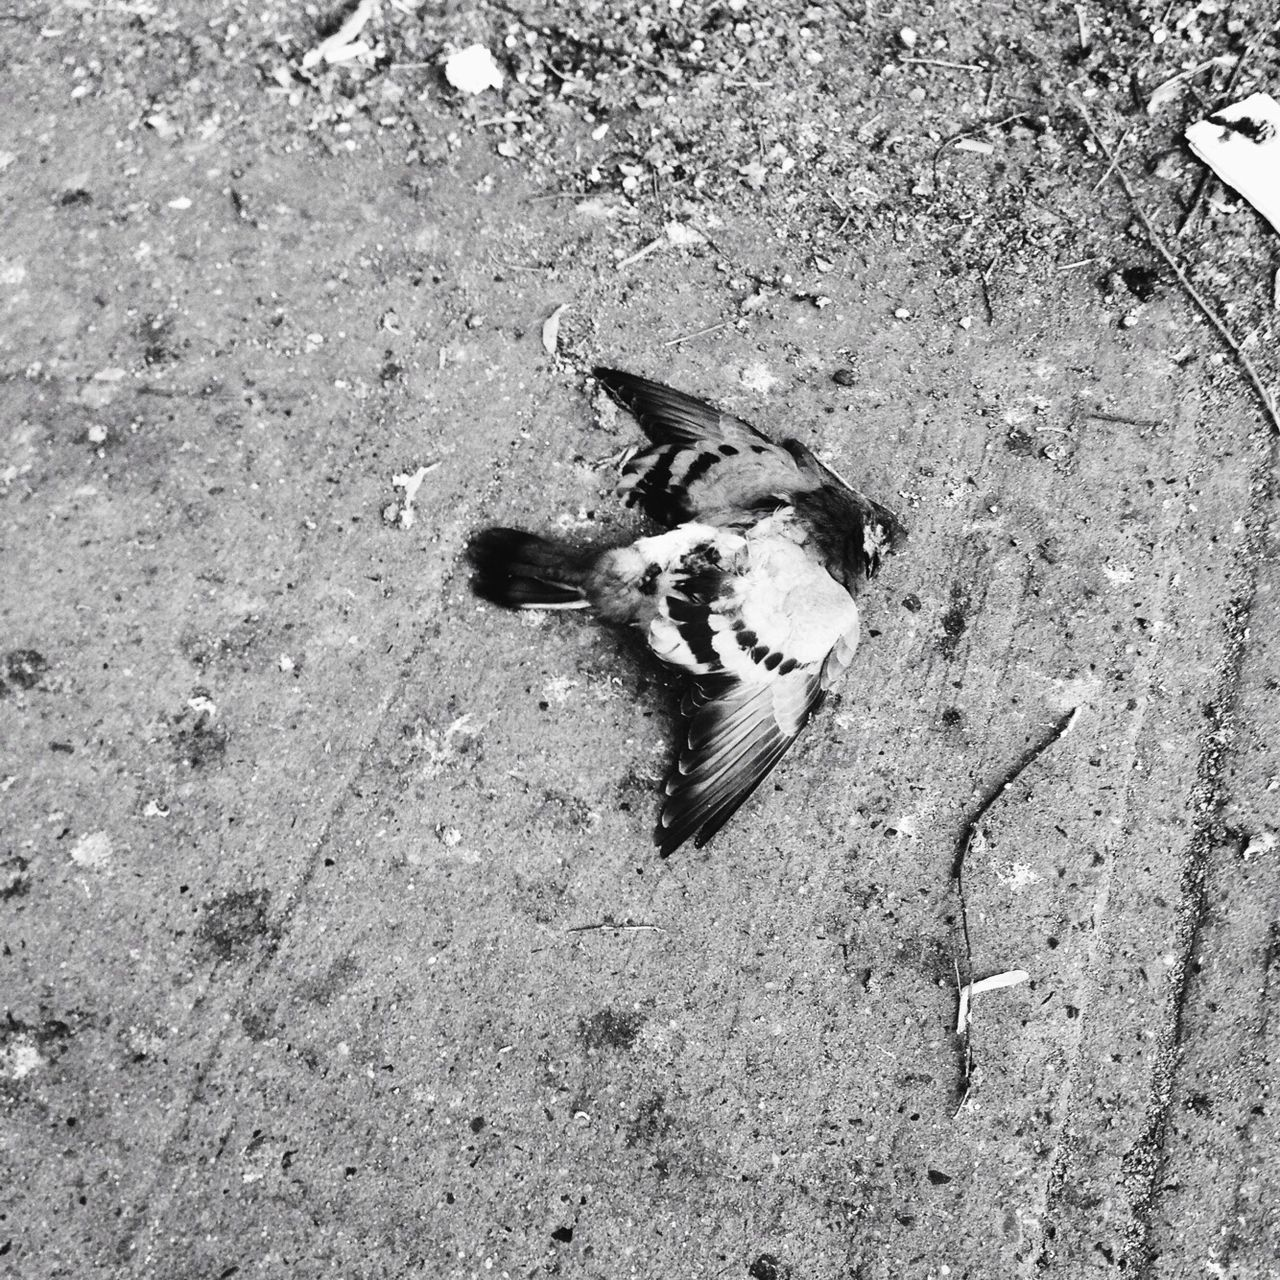 Animal Themes Bird Dead Animal Dead Bird Black And White Life Death Wings Pigeon Outdoors City Sidewalk